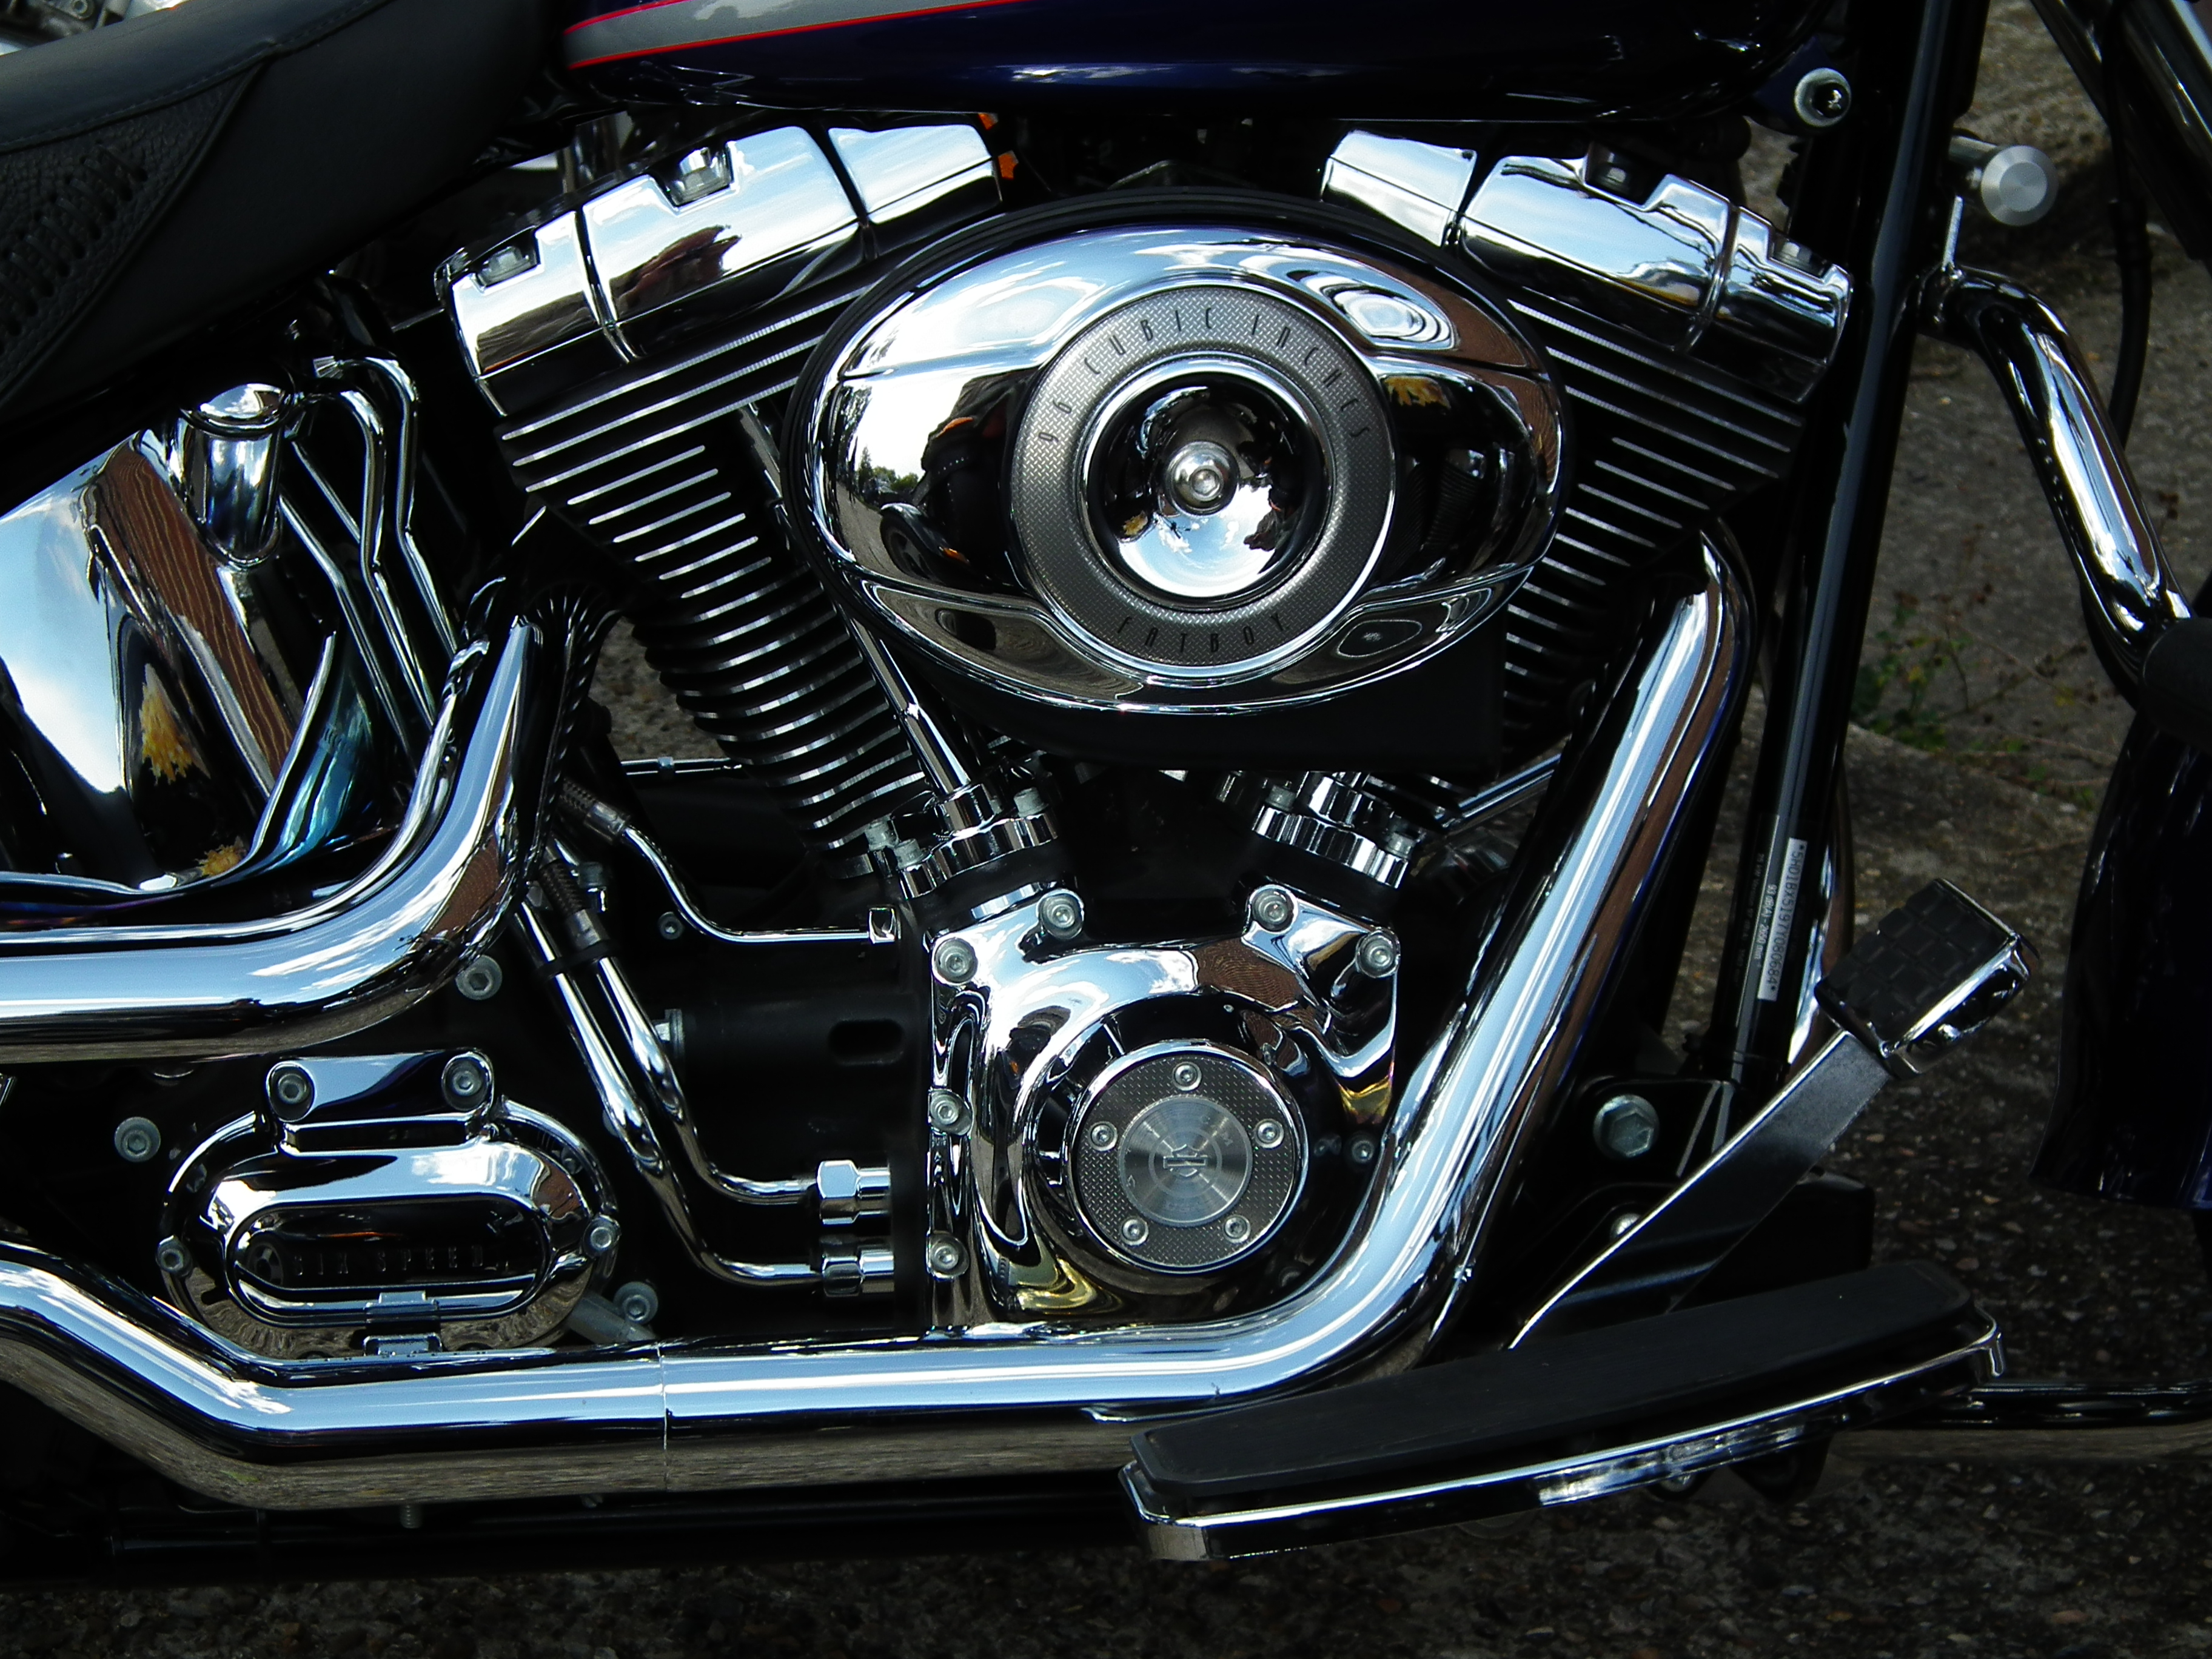 Harley Davidson Flstf Triple Clamp Parts Guide